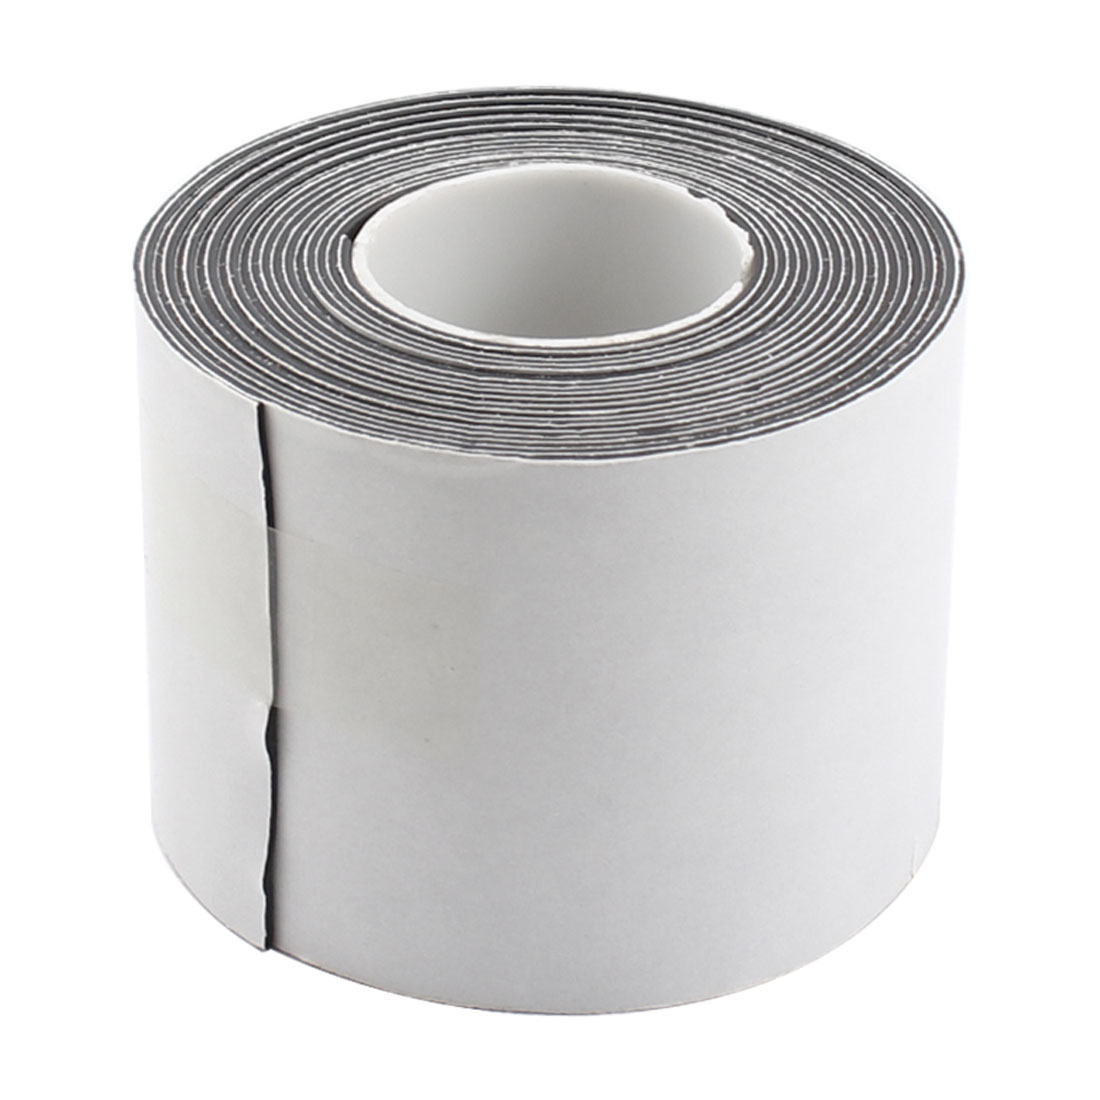 0.8mmx50mm 2.5 Meters PVC Electrical Wire Insulating Waterproof Tape Roll Black